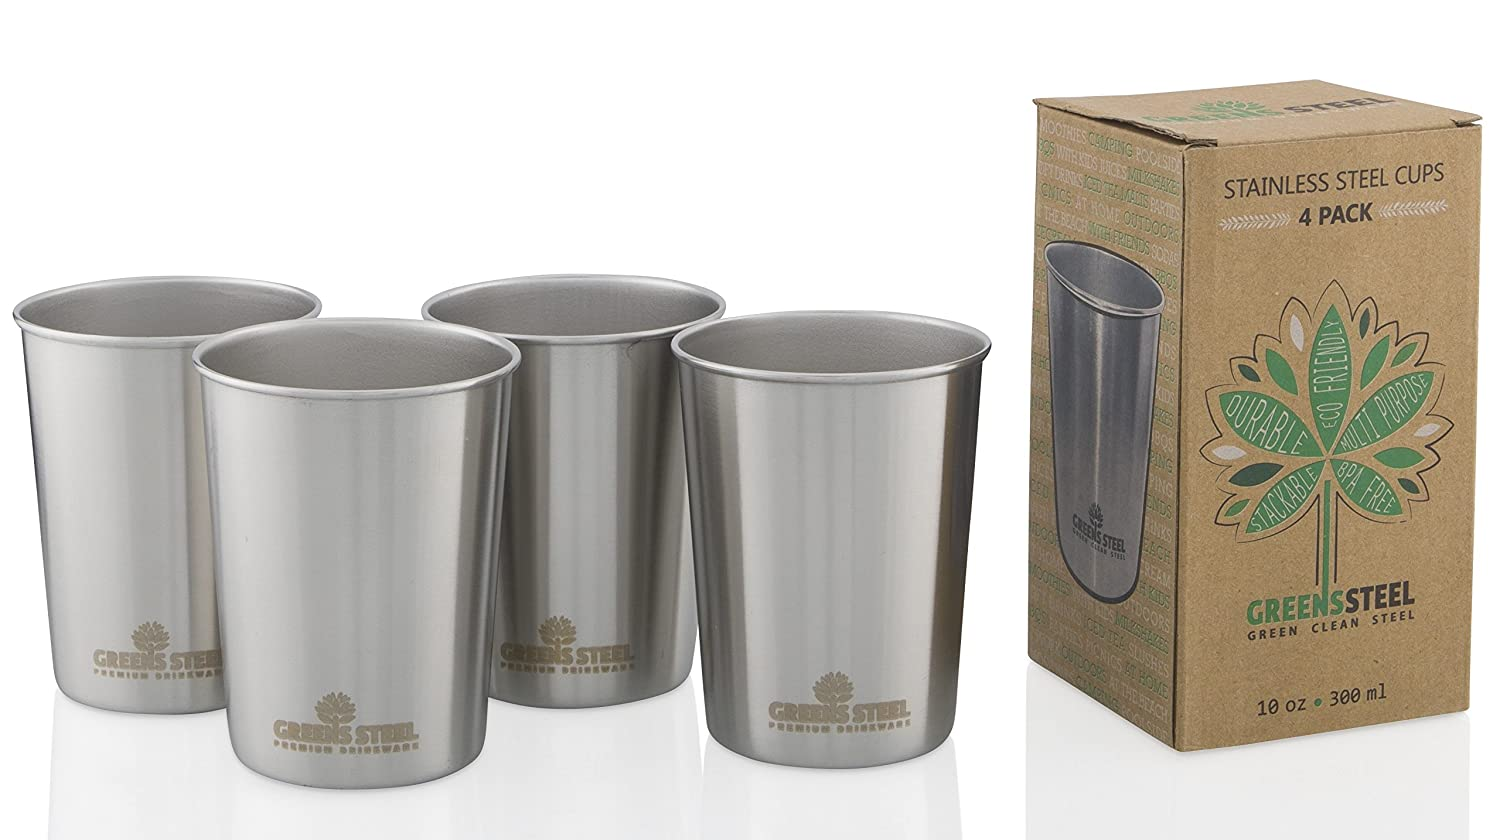 10oz Stainless Steel Cups for Kids - Metal Cup - Fun Animal Edition (4 Pack) By Greens Steel SYNCHKG130441